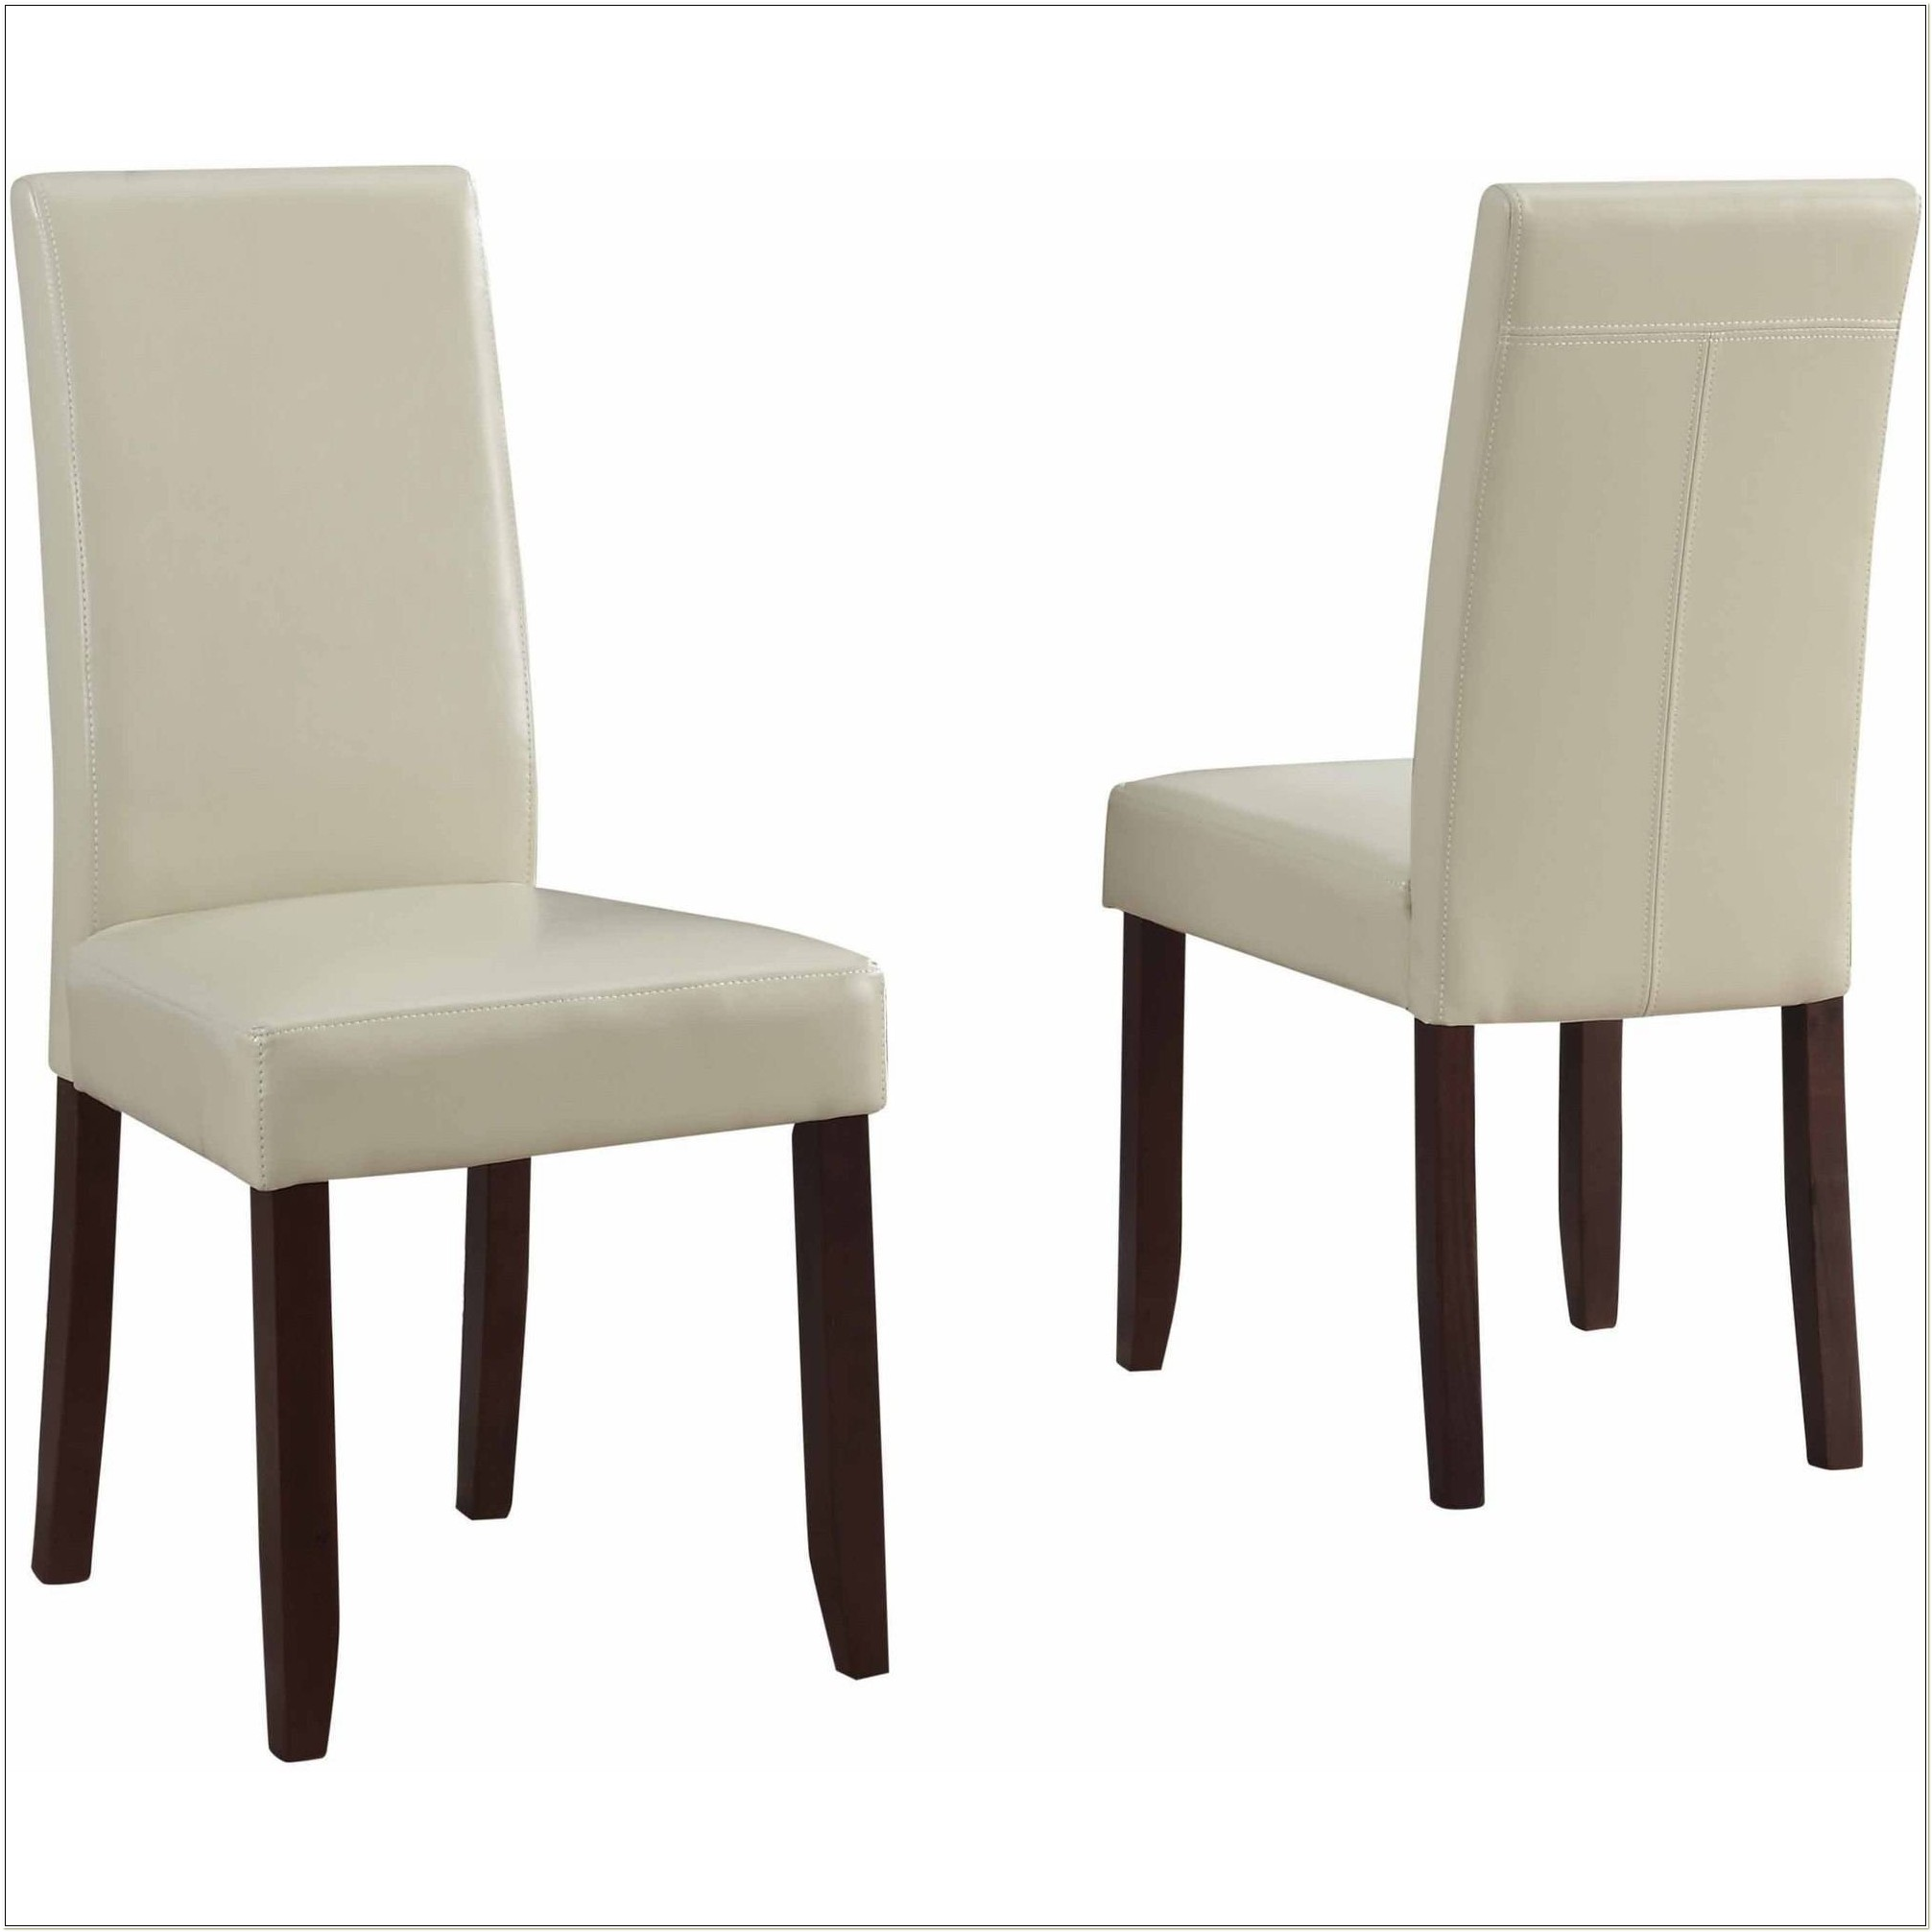 Dining Chairs At Walmart